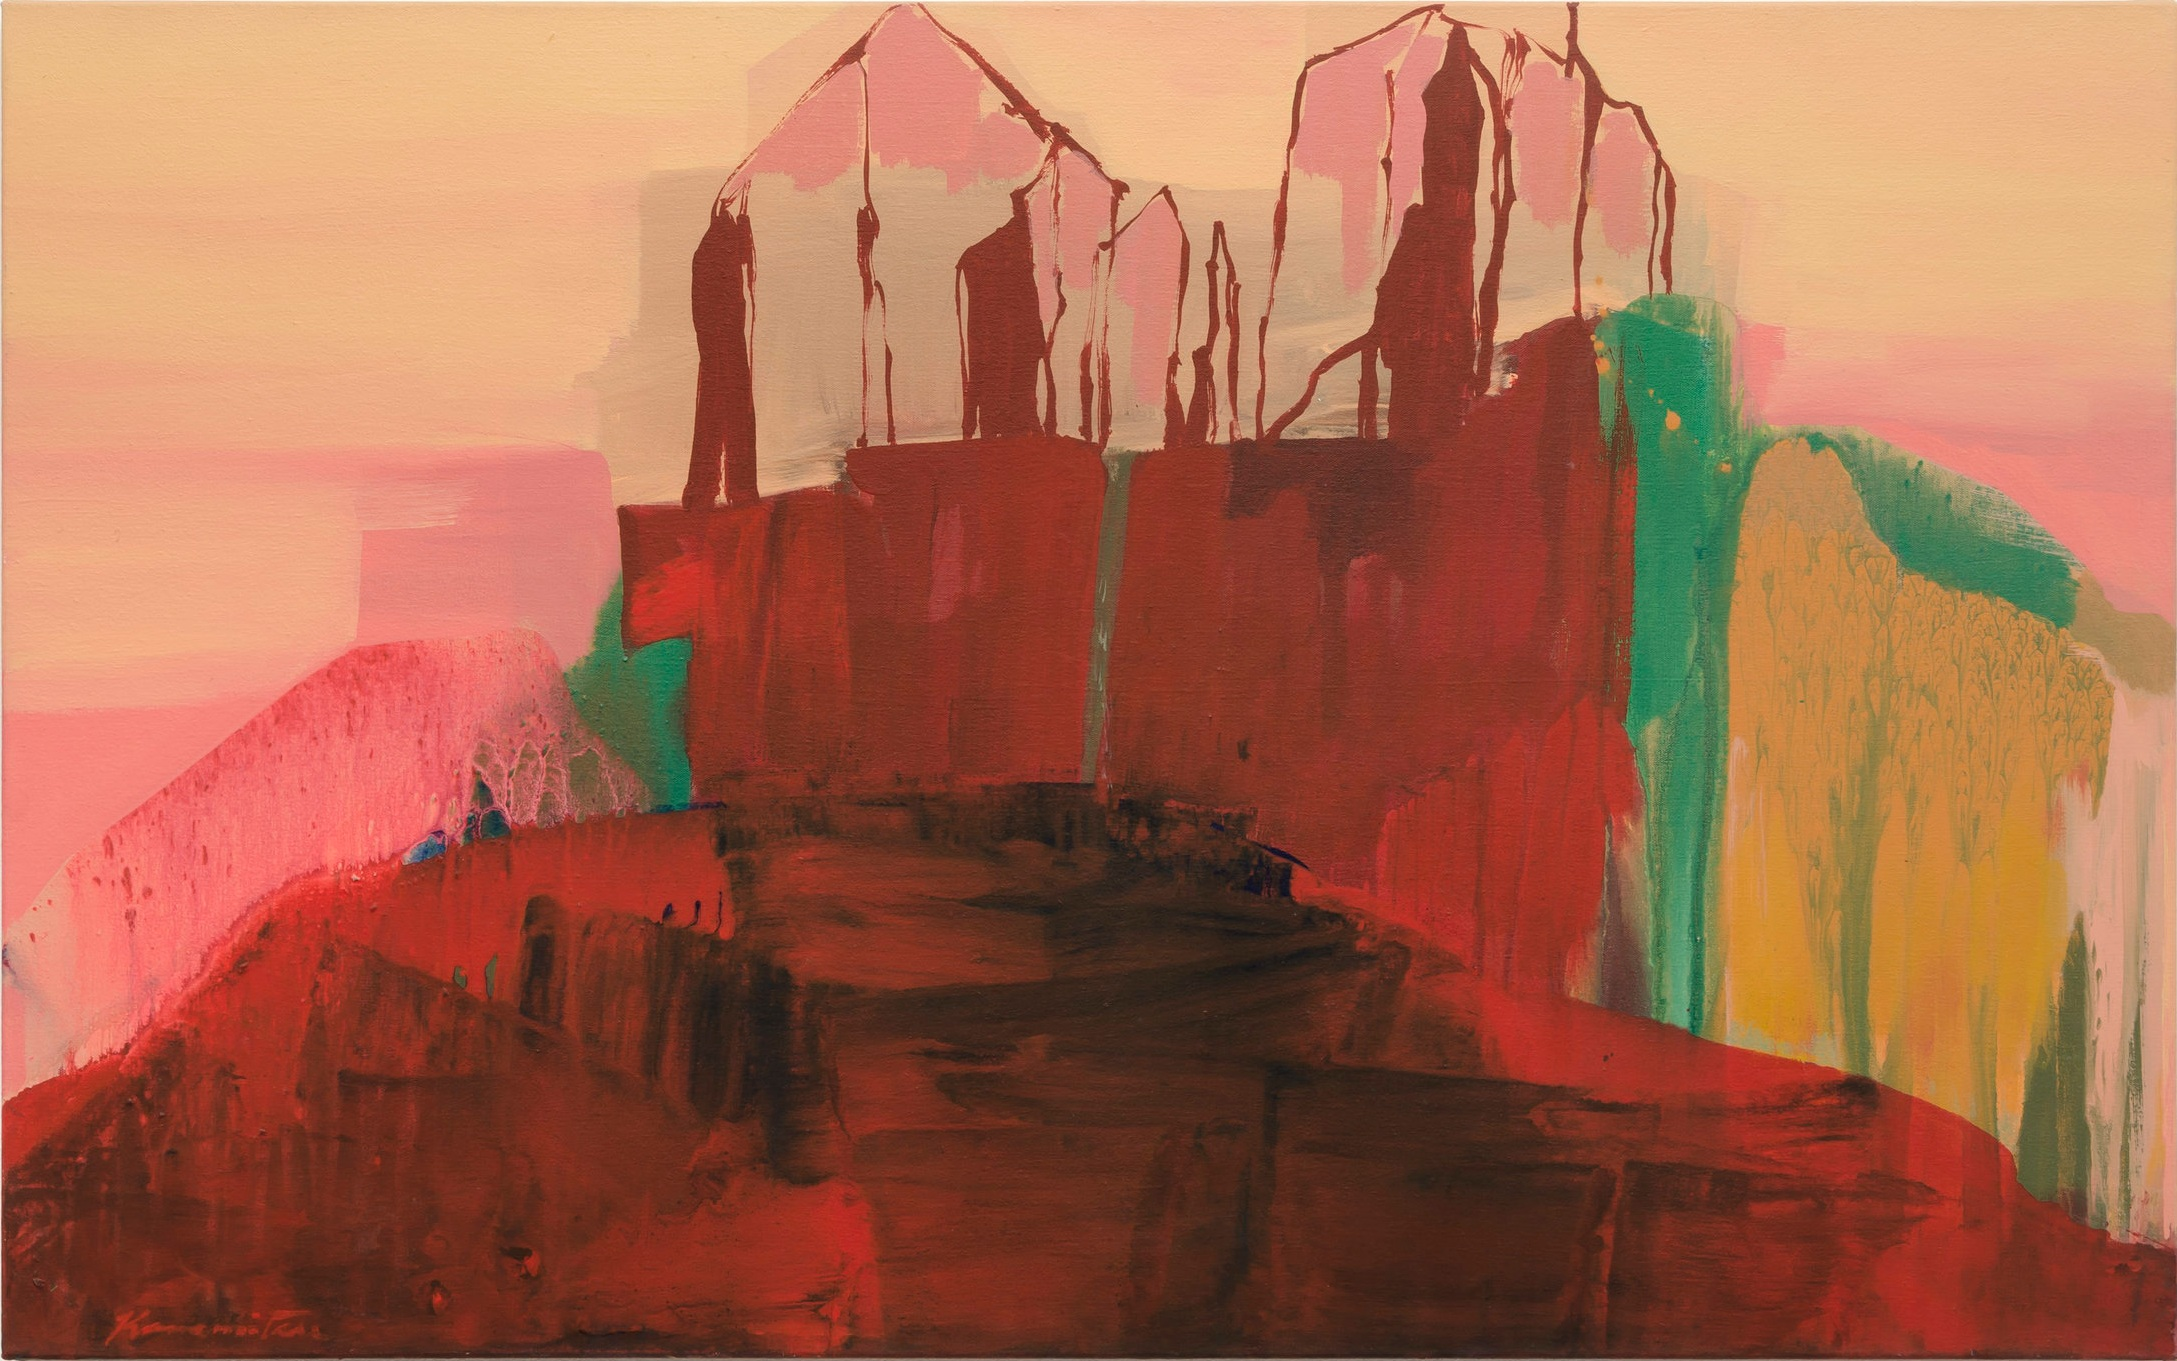 Sunset – Desert , 1989 acrylic on canvas 30.25 x 48.25 inches; 76.8 x 122.6 centimeters